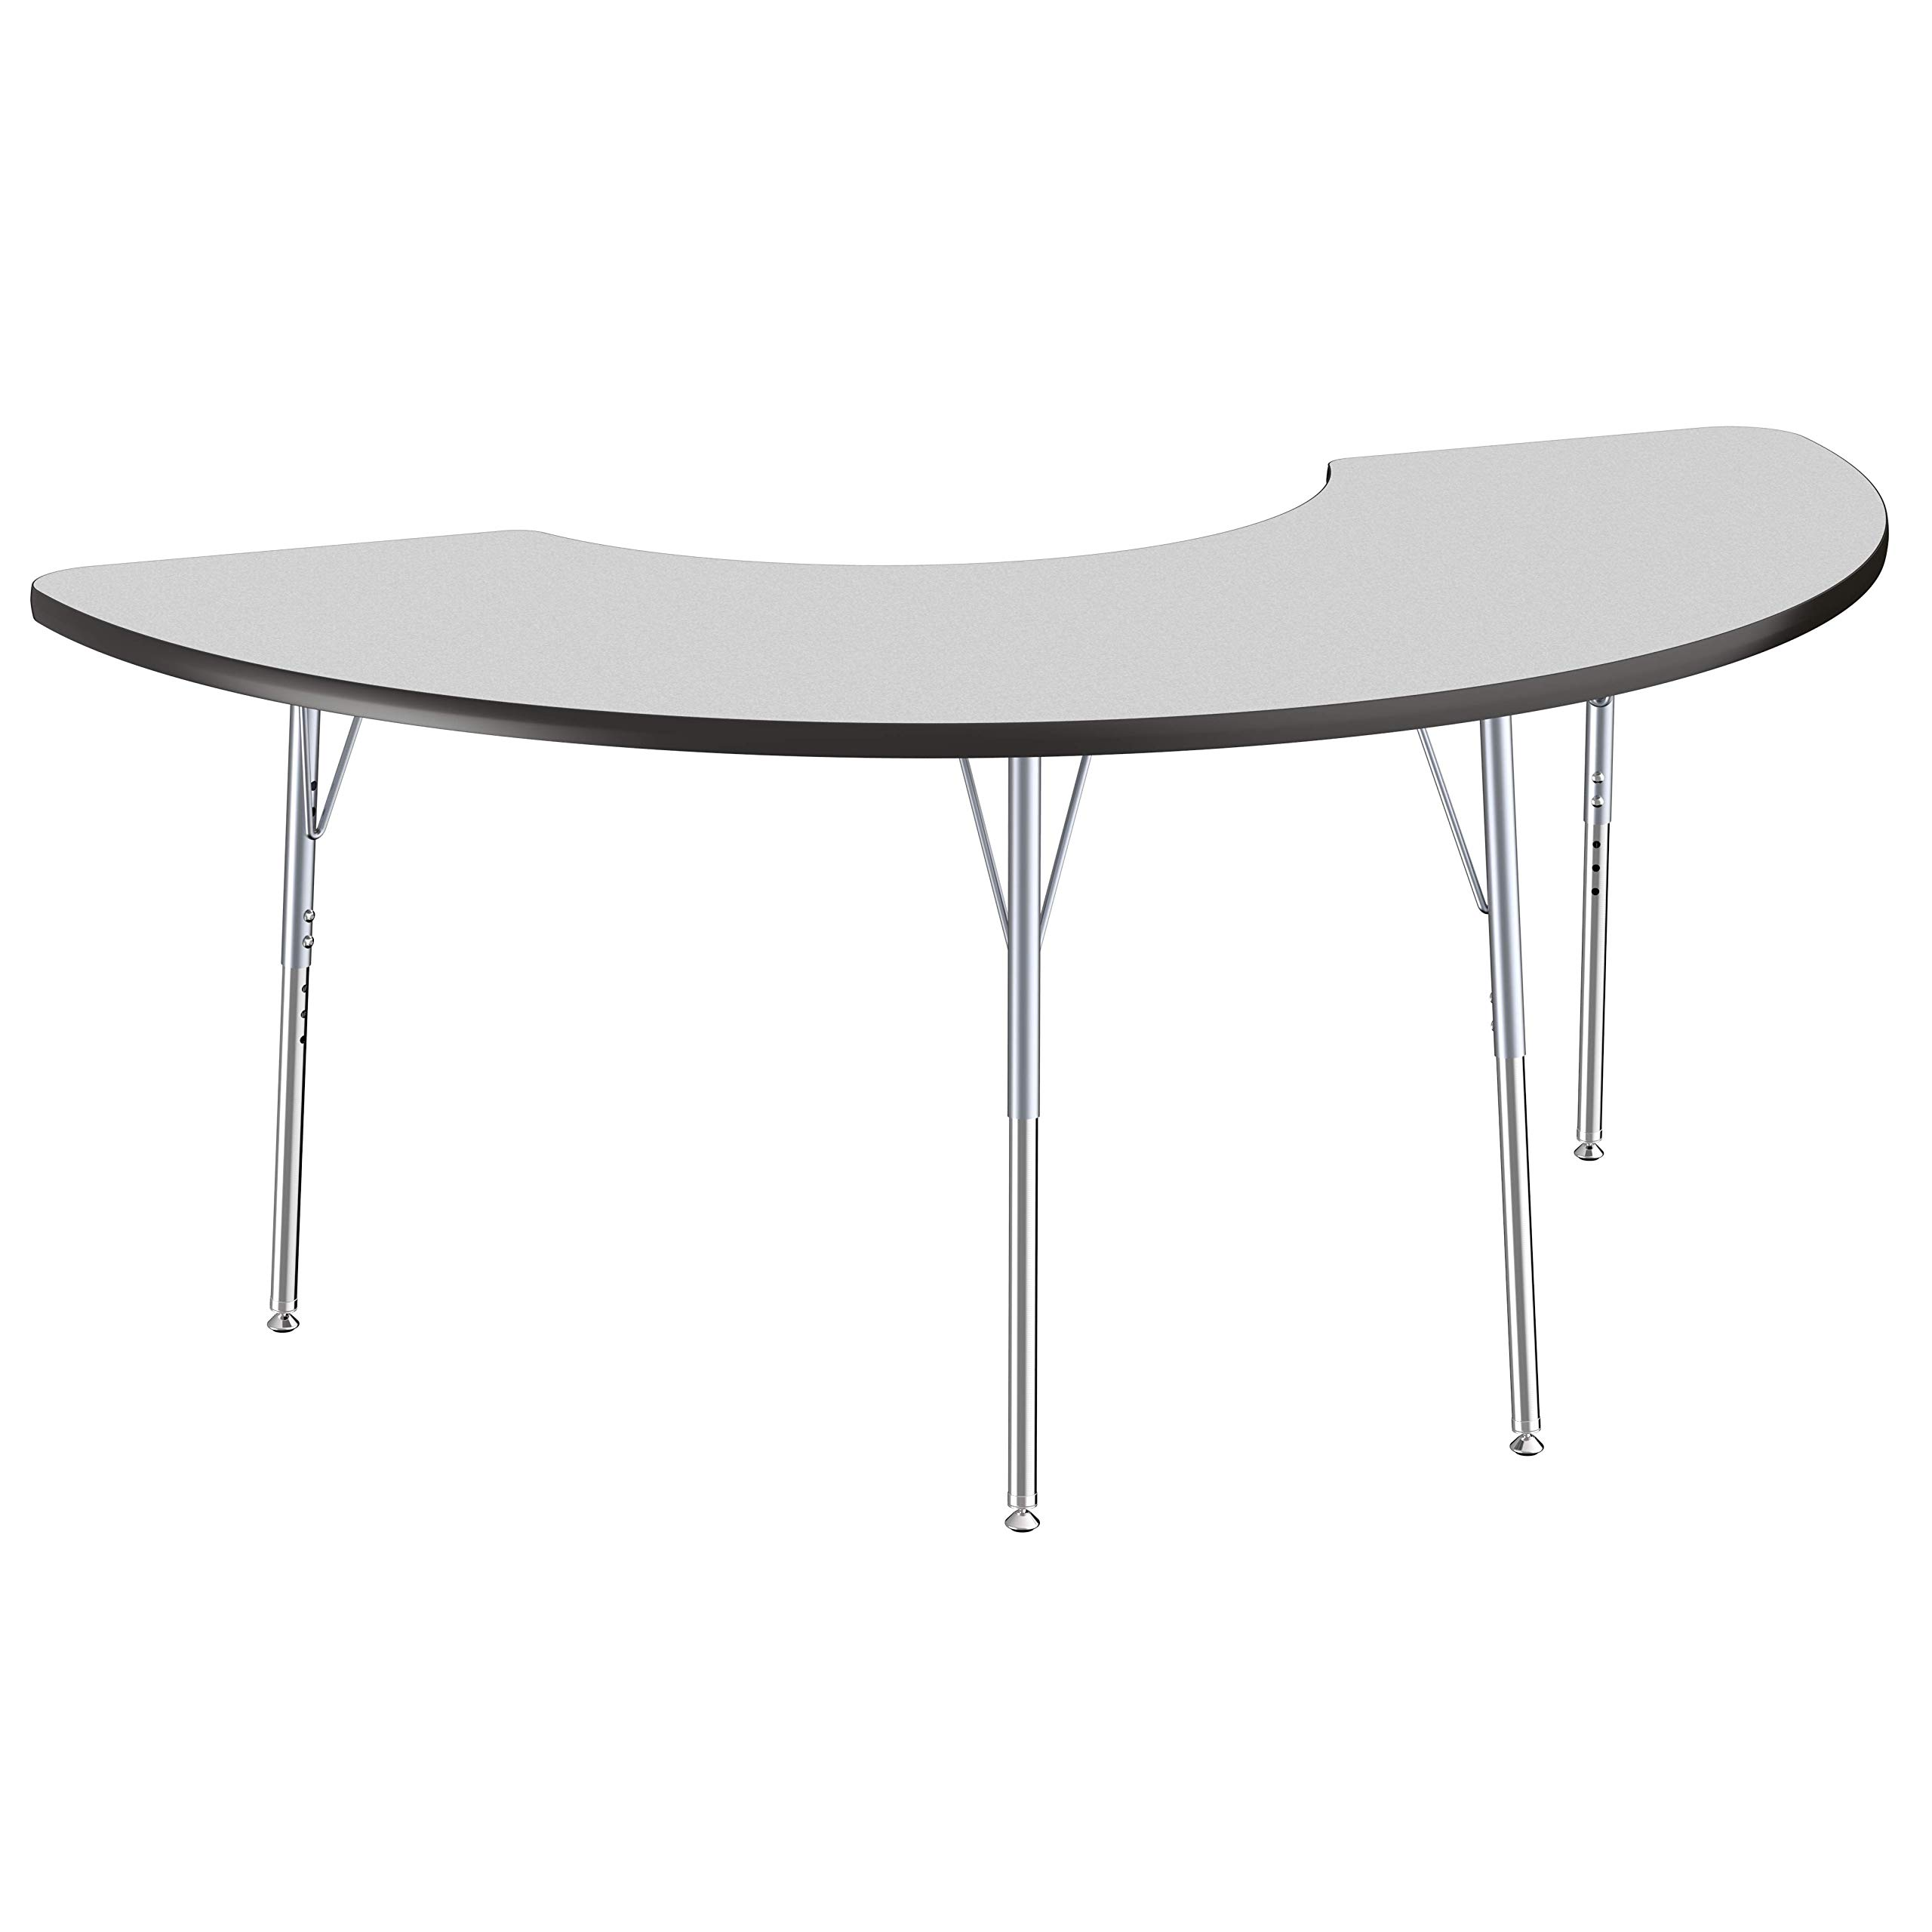 FDP Half Moon Premium Contour Activity School and Office Table (36 x 72 inch), Standard Legs with Swivel Glides for Collaborative Spaces, Adjustable Height 19-30 inches - Gray Top and Black Edge by Factory Direct Partners